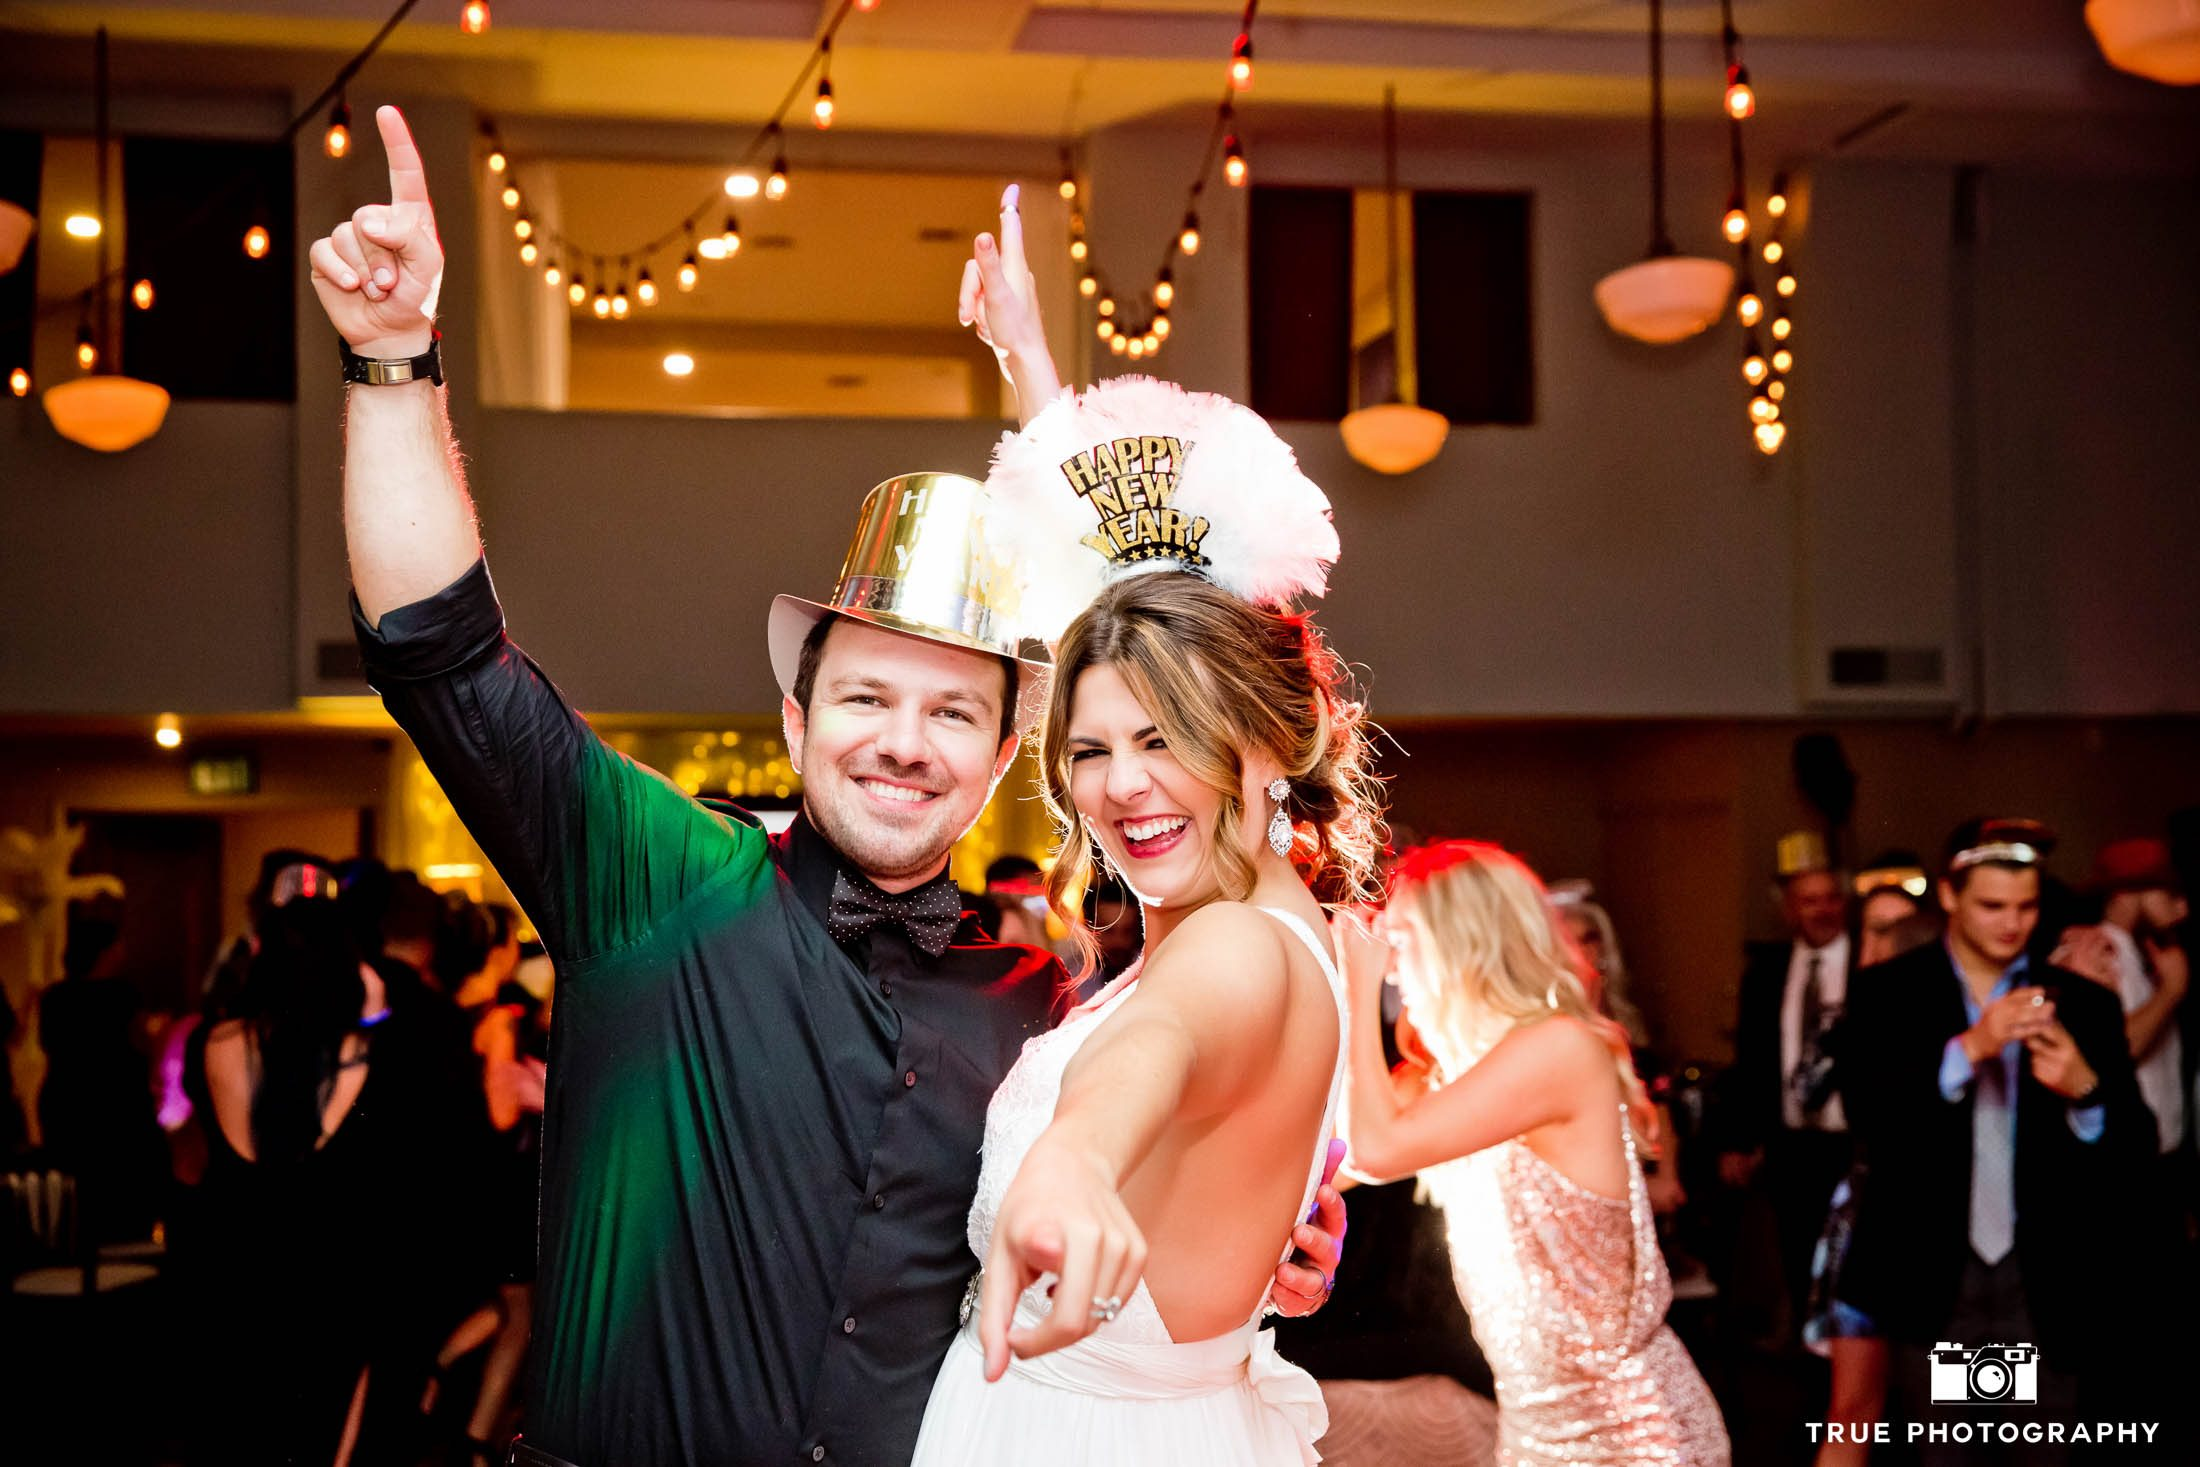 Bride and Groom celebrate during new year's eve wedding